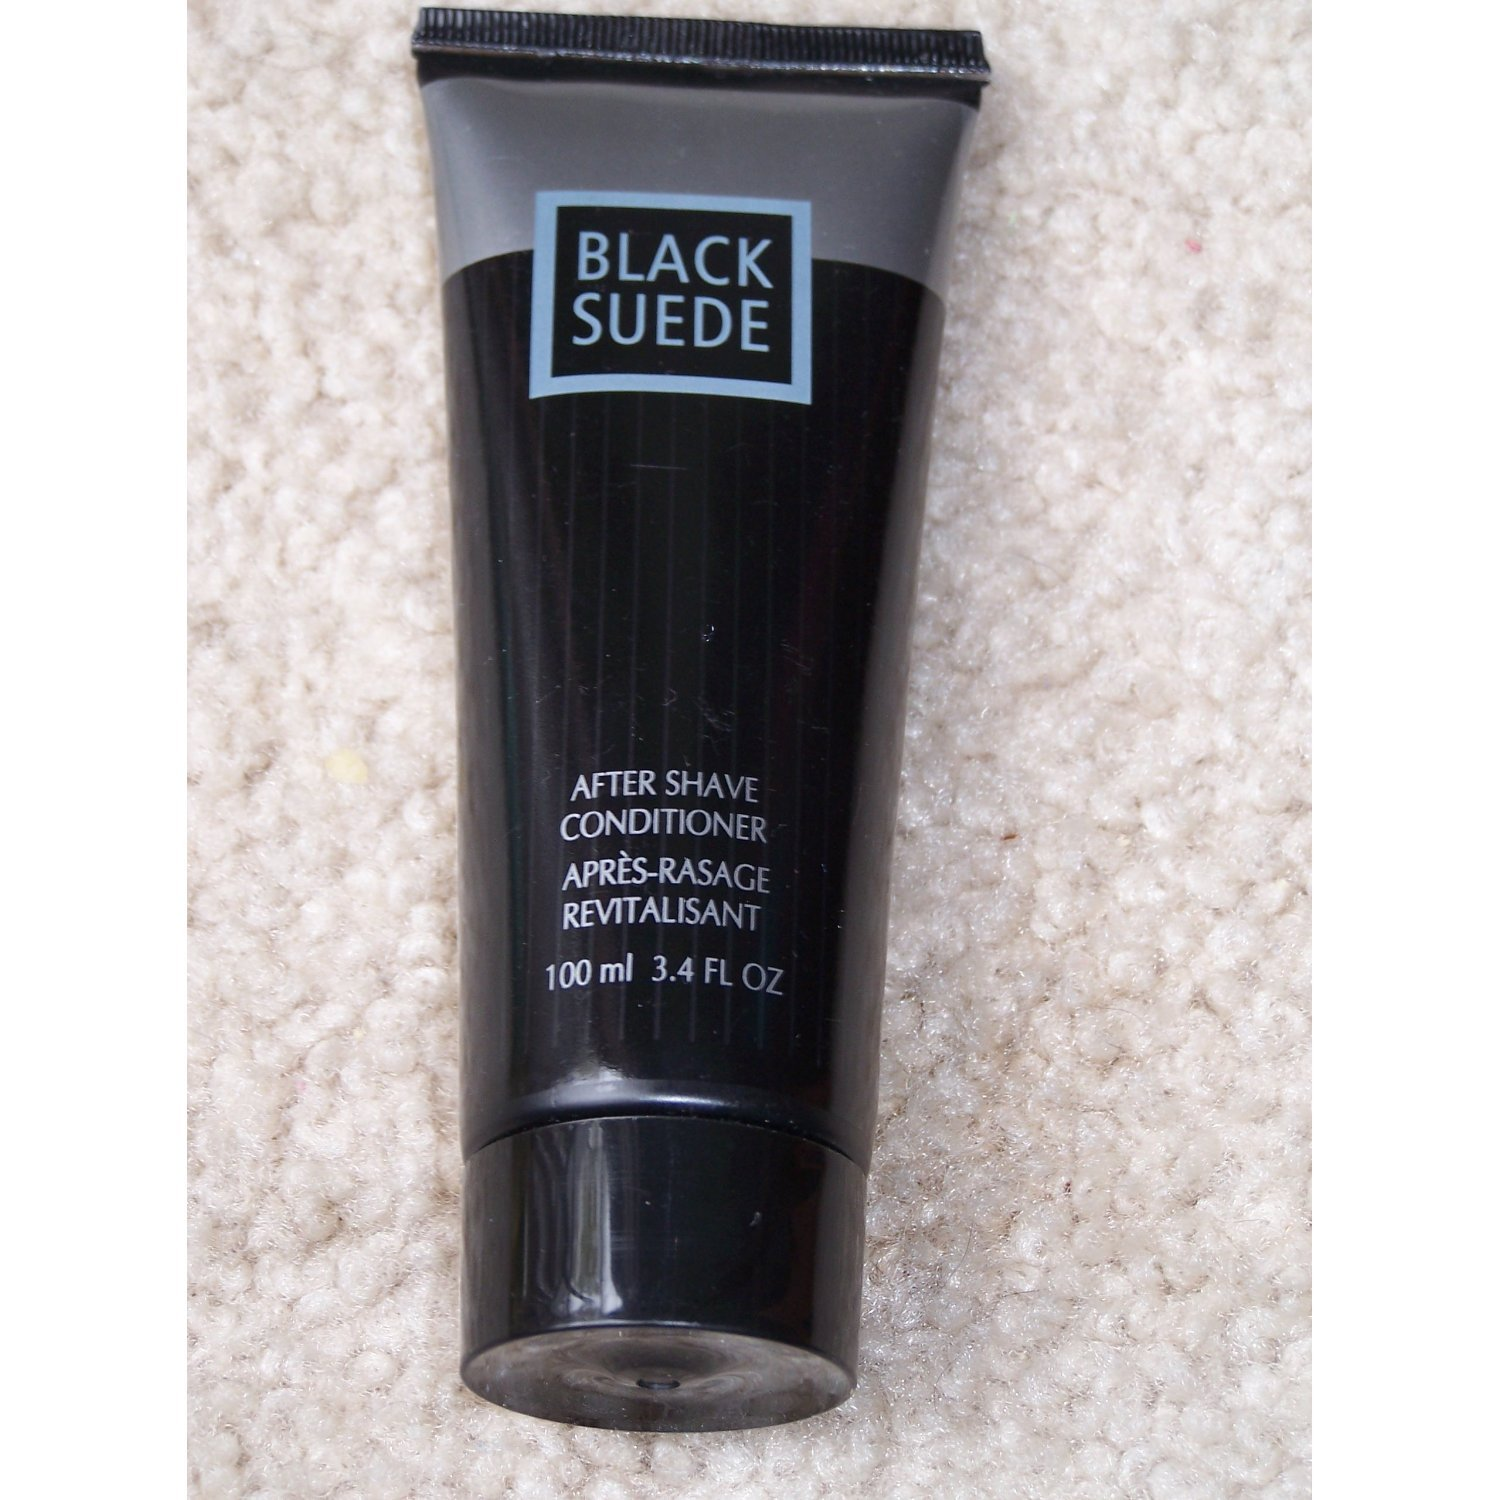 Black Suede After Shave Conditioner By Avon